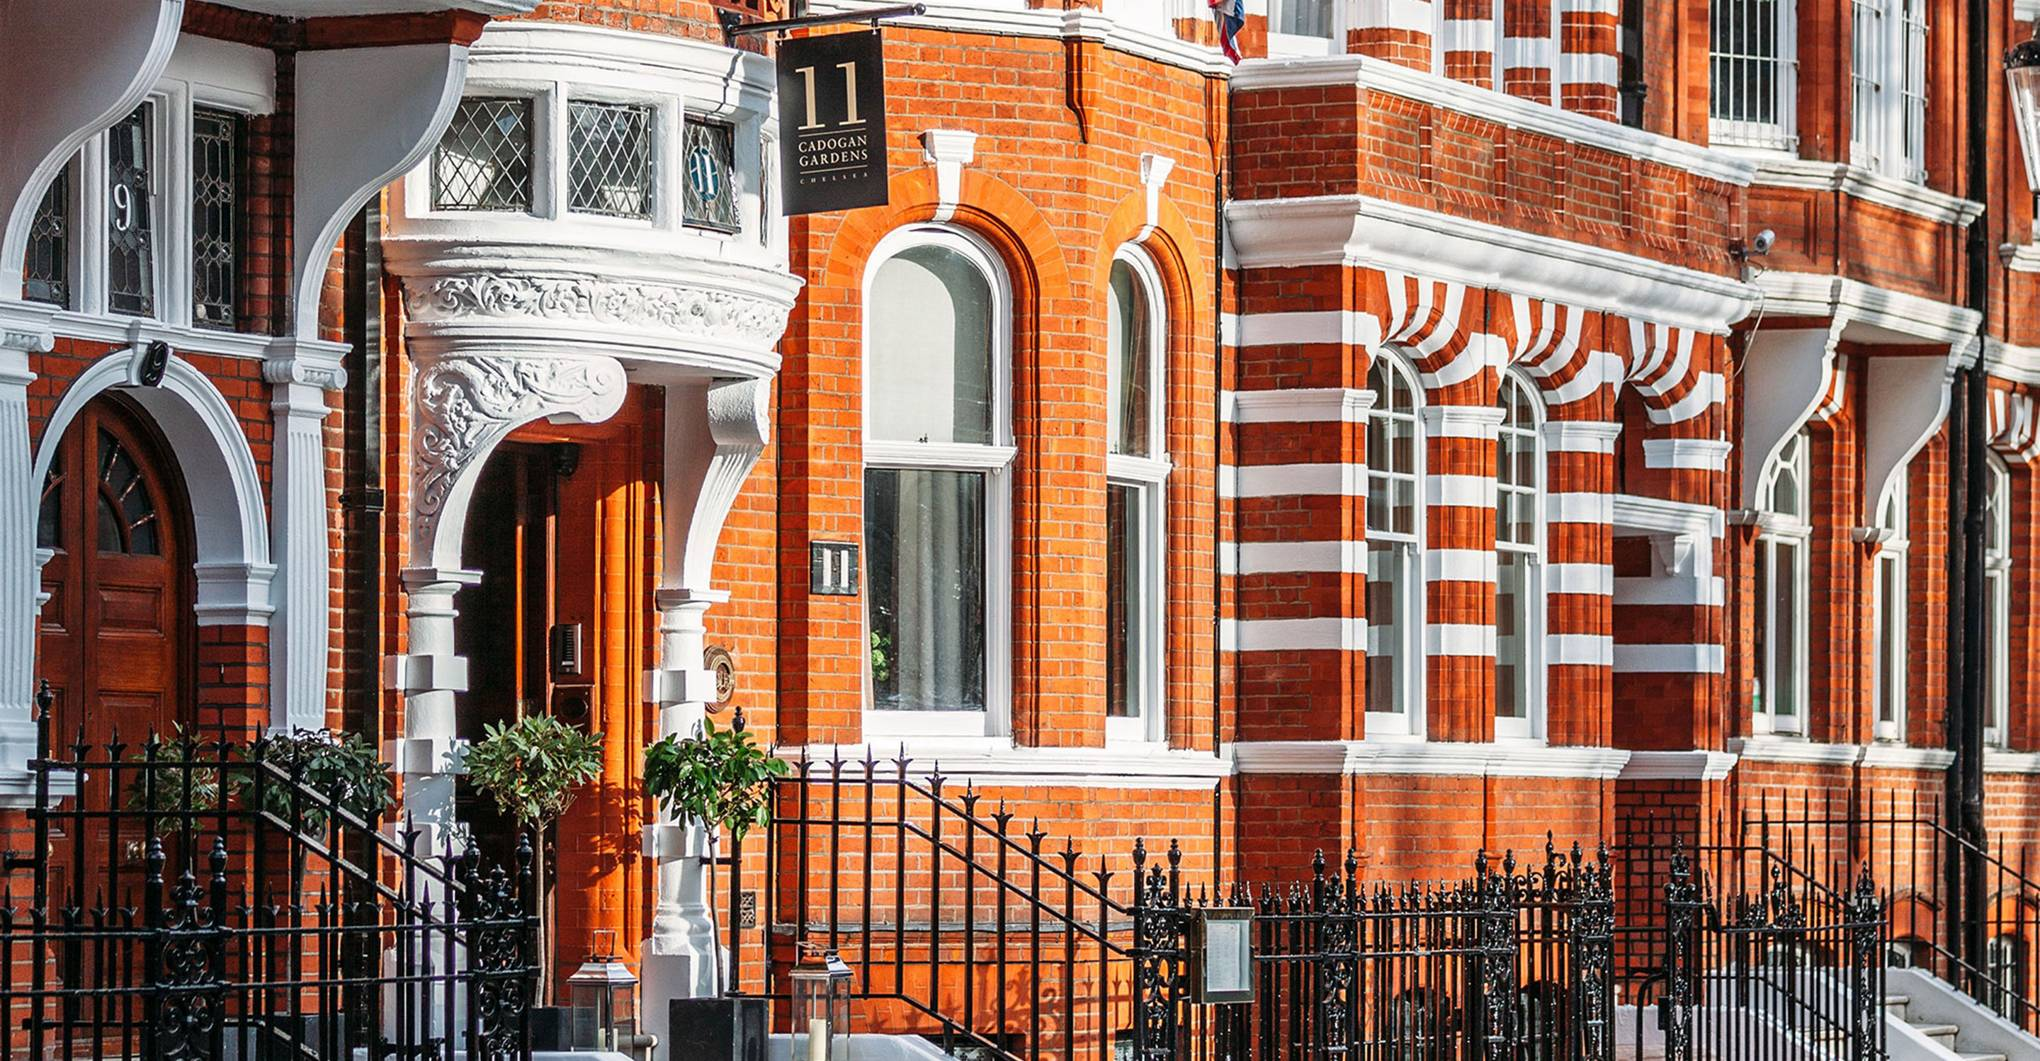 Win a stay in Chelsea, London at 11 Cadogan Gardens